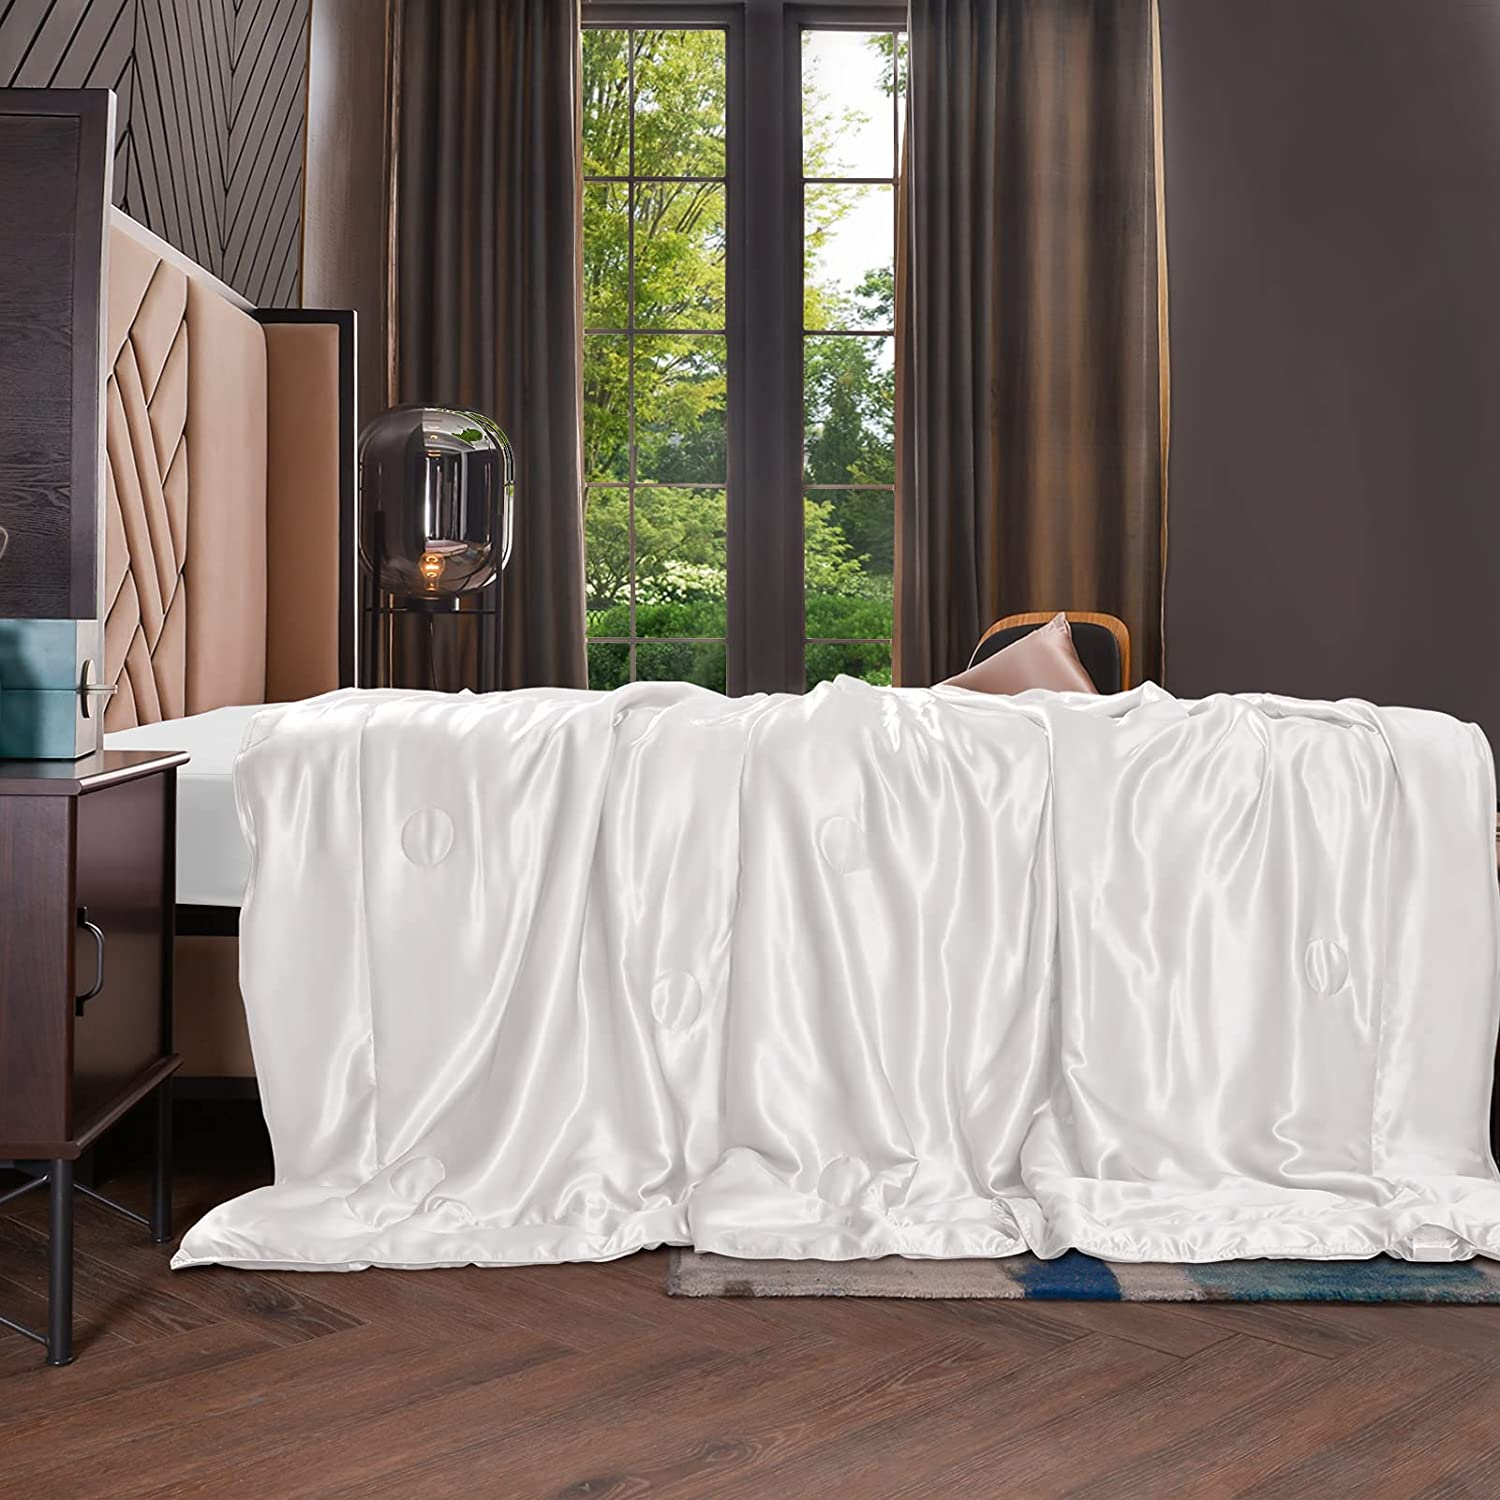 THXSILK 100% Silk Throw Blanket for Bed/Couch Top Grade Long-Strand Silk Quilted Bedspread Soft & Cozy (White, 53x70 inch)